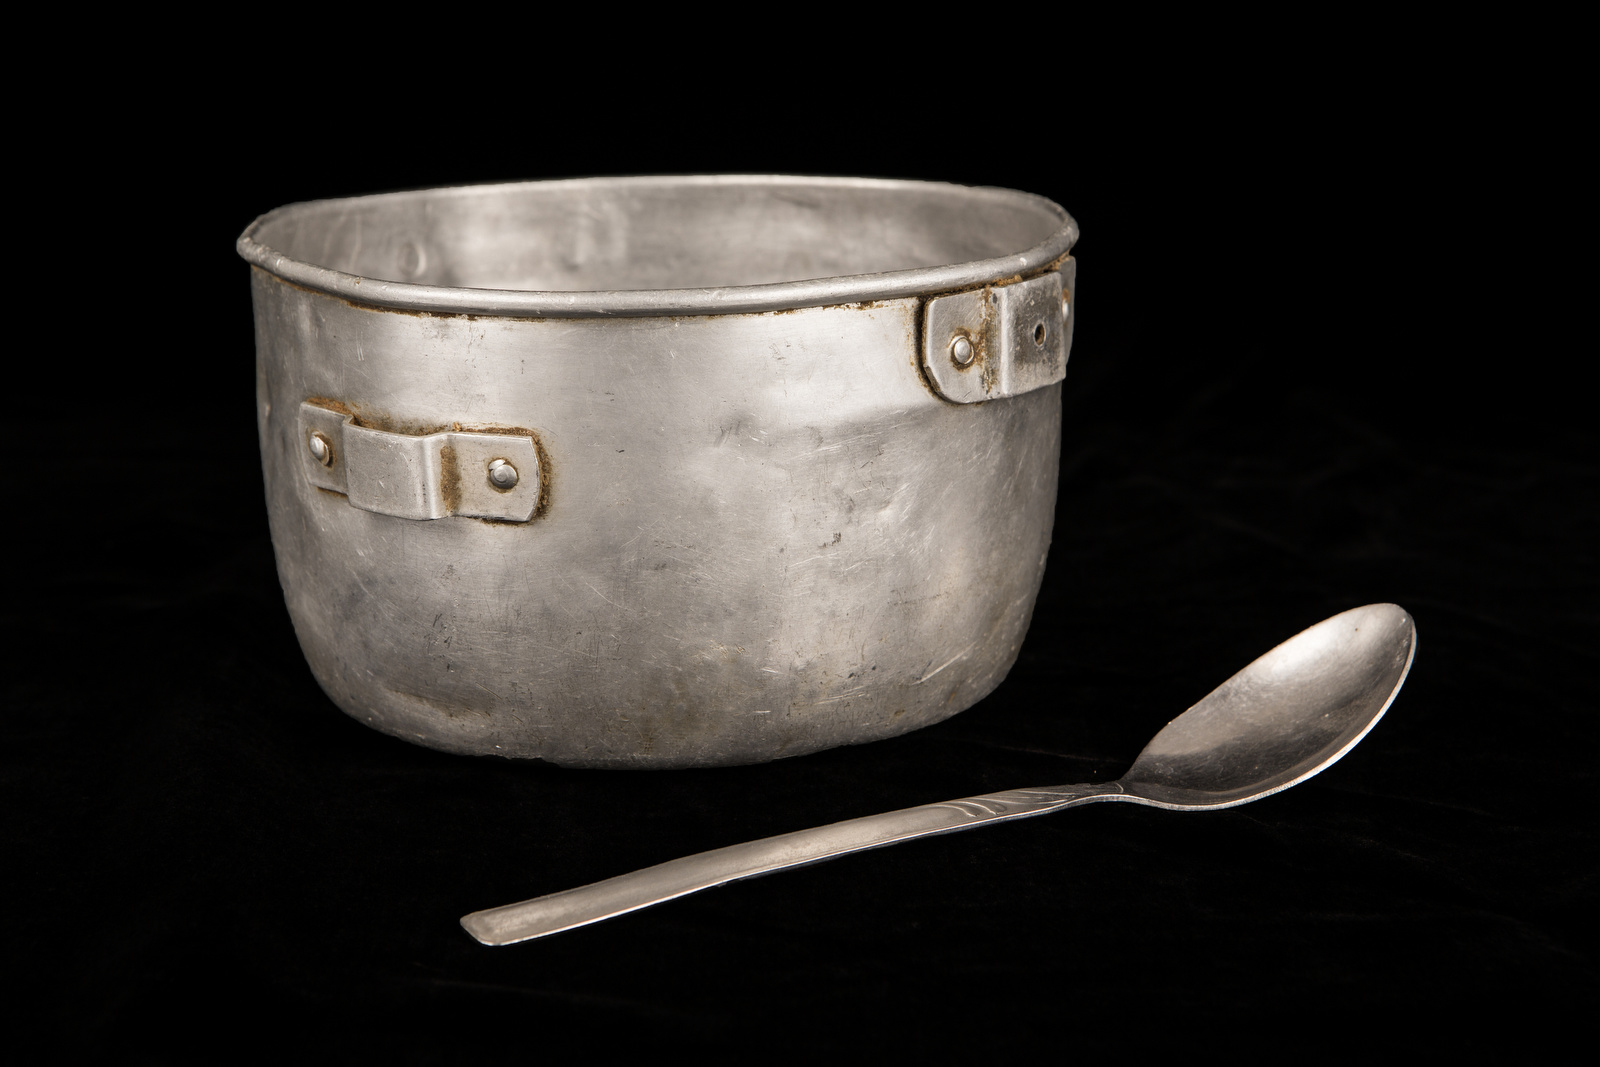 For the 54 days that Harald Ickler was held captive in the Sahara Desert by an Al Qaeda affiliated terrorist group, he ate every meal out of this bowl with this spoon. Most days, he and other hostages were given a thin soup of flour and water. In the morning it had sugar, in the middle of the day, salt, and in the afternoon, {quote}Classic{quote} as Ickler calls it, with neither salt nor sugar. One time the mujahideen who were holding his group killed a camel and they received a bit of meat. {quote}That was like Christmas for us,{quote} said Ickler.